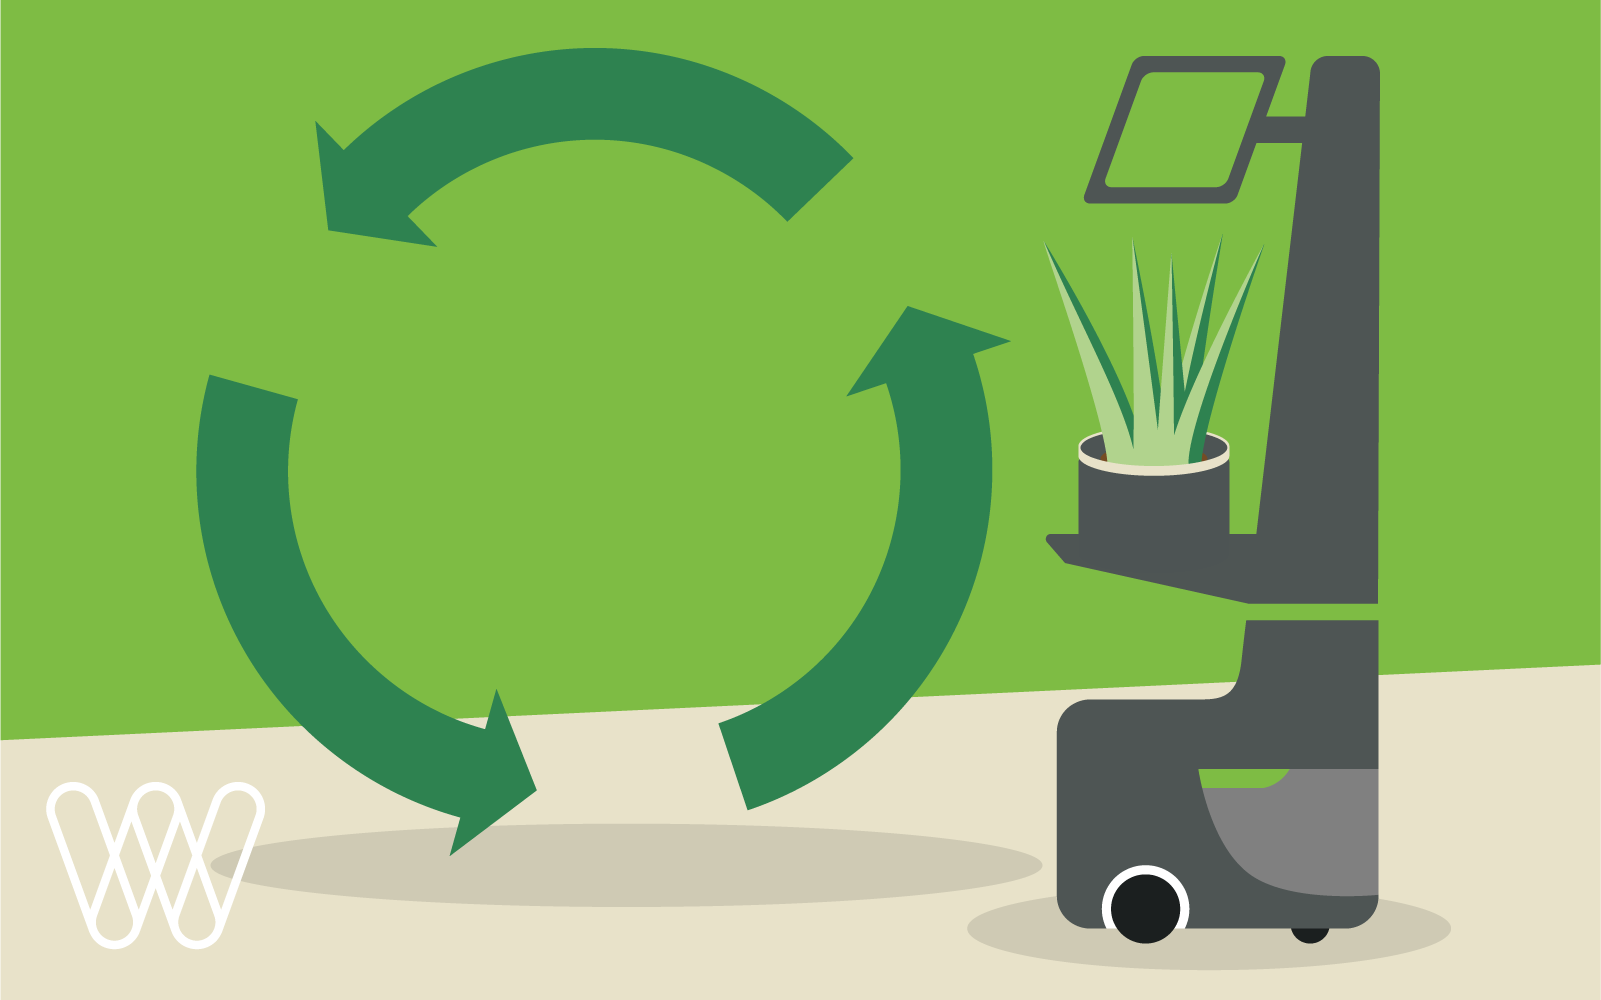 illustration of a locusbot and recycling symbol